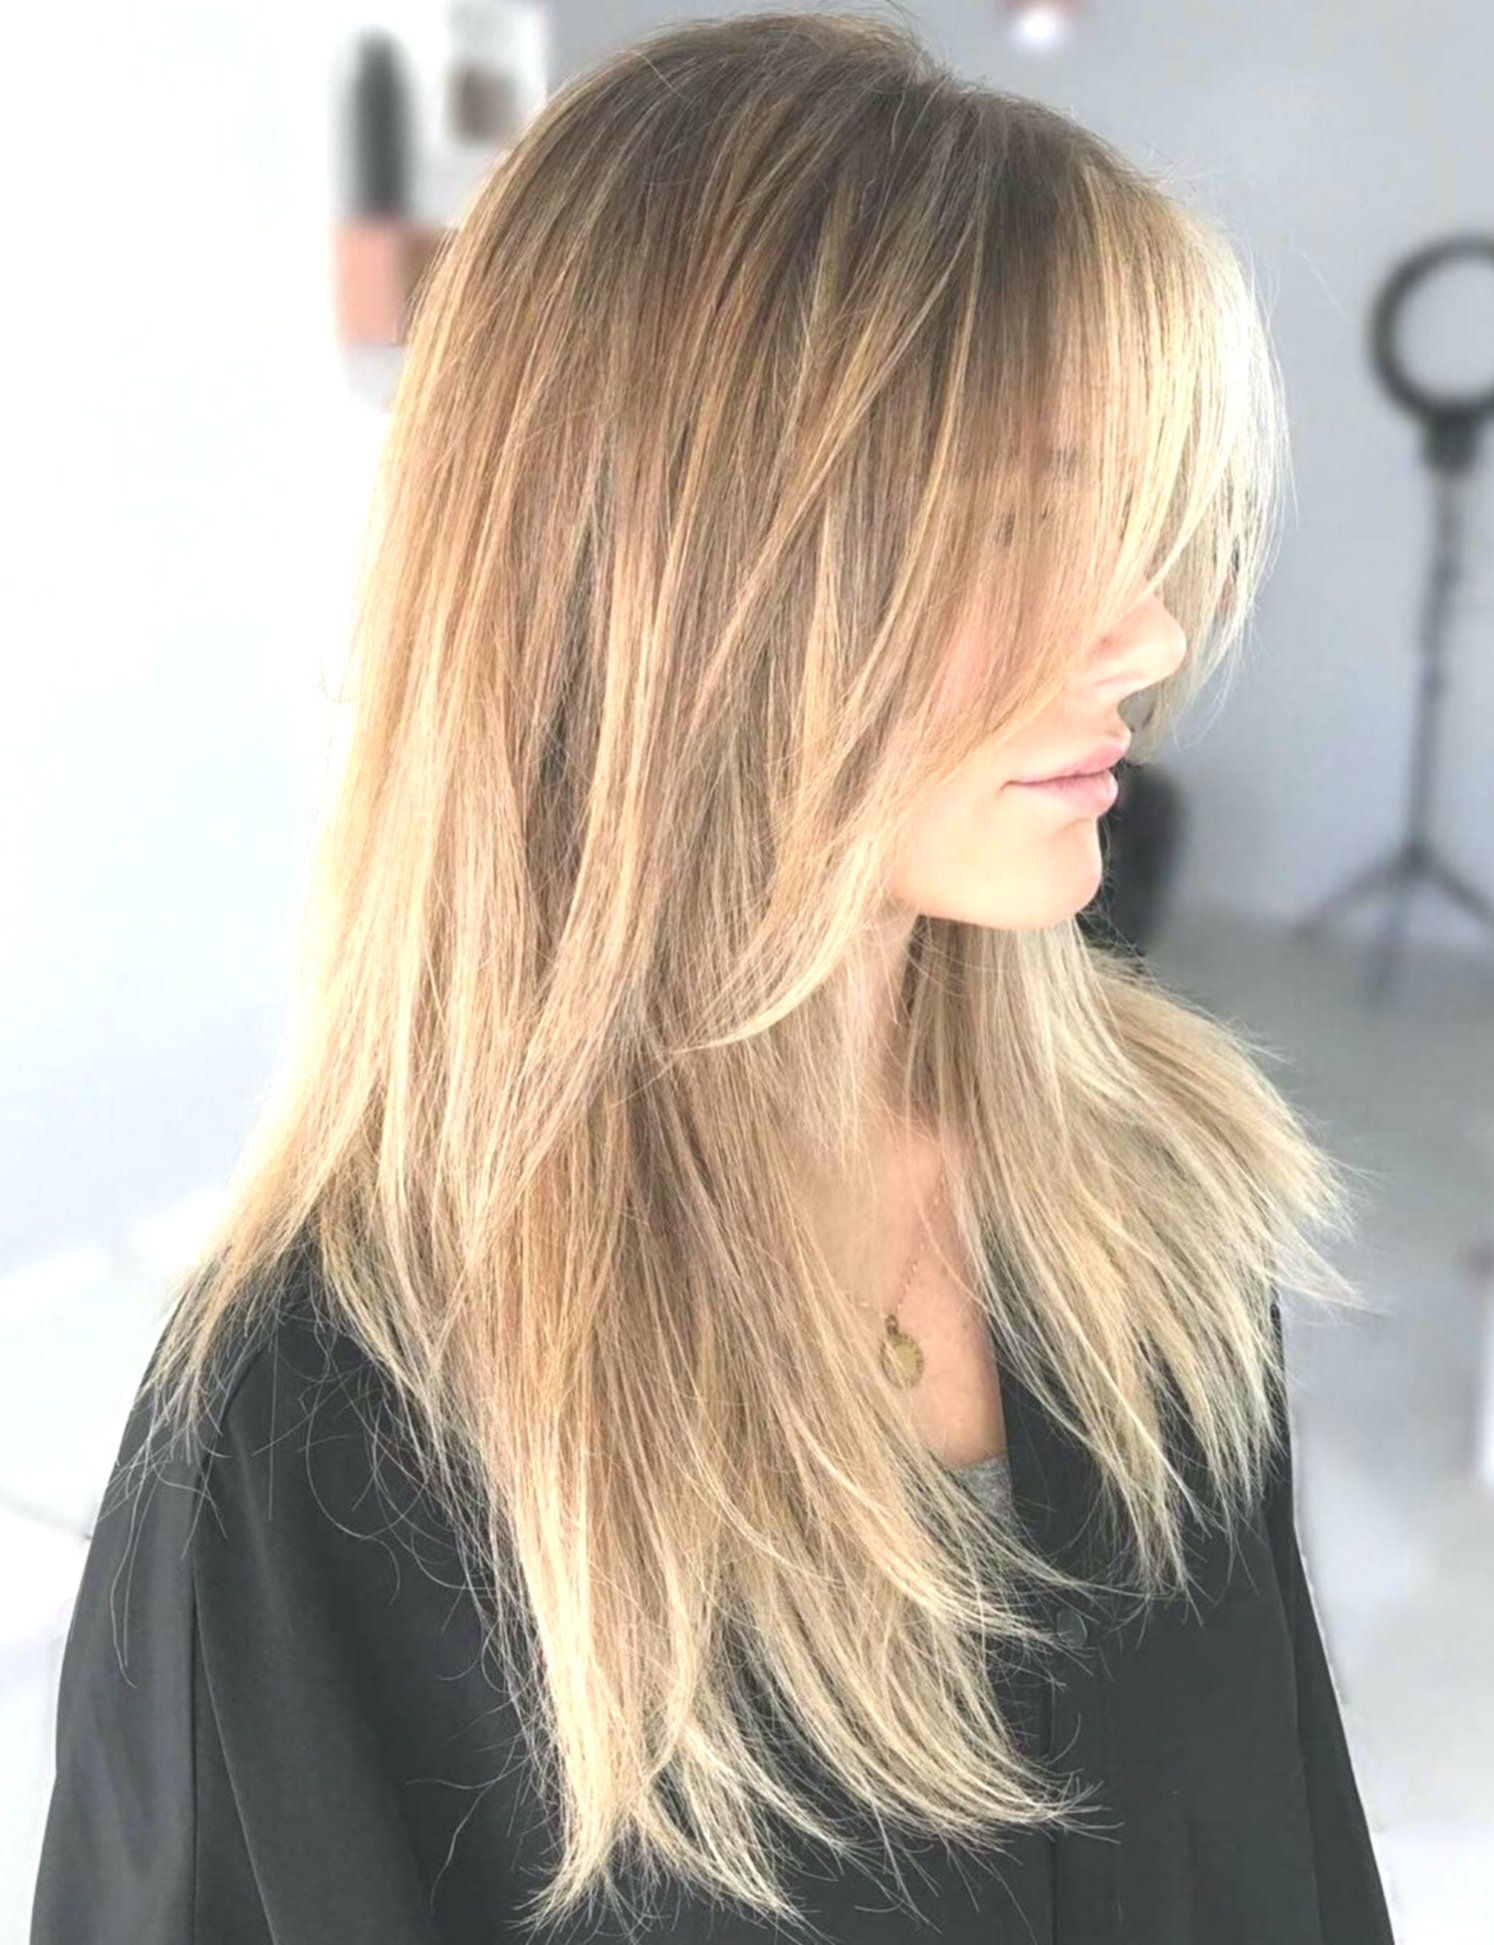 40 Lovely Lengthy Hairstyles For Your Fashionable Look Kapsels Haar Knippen Kapsel Laagjes Voorkant